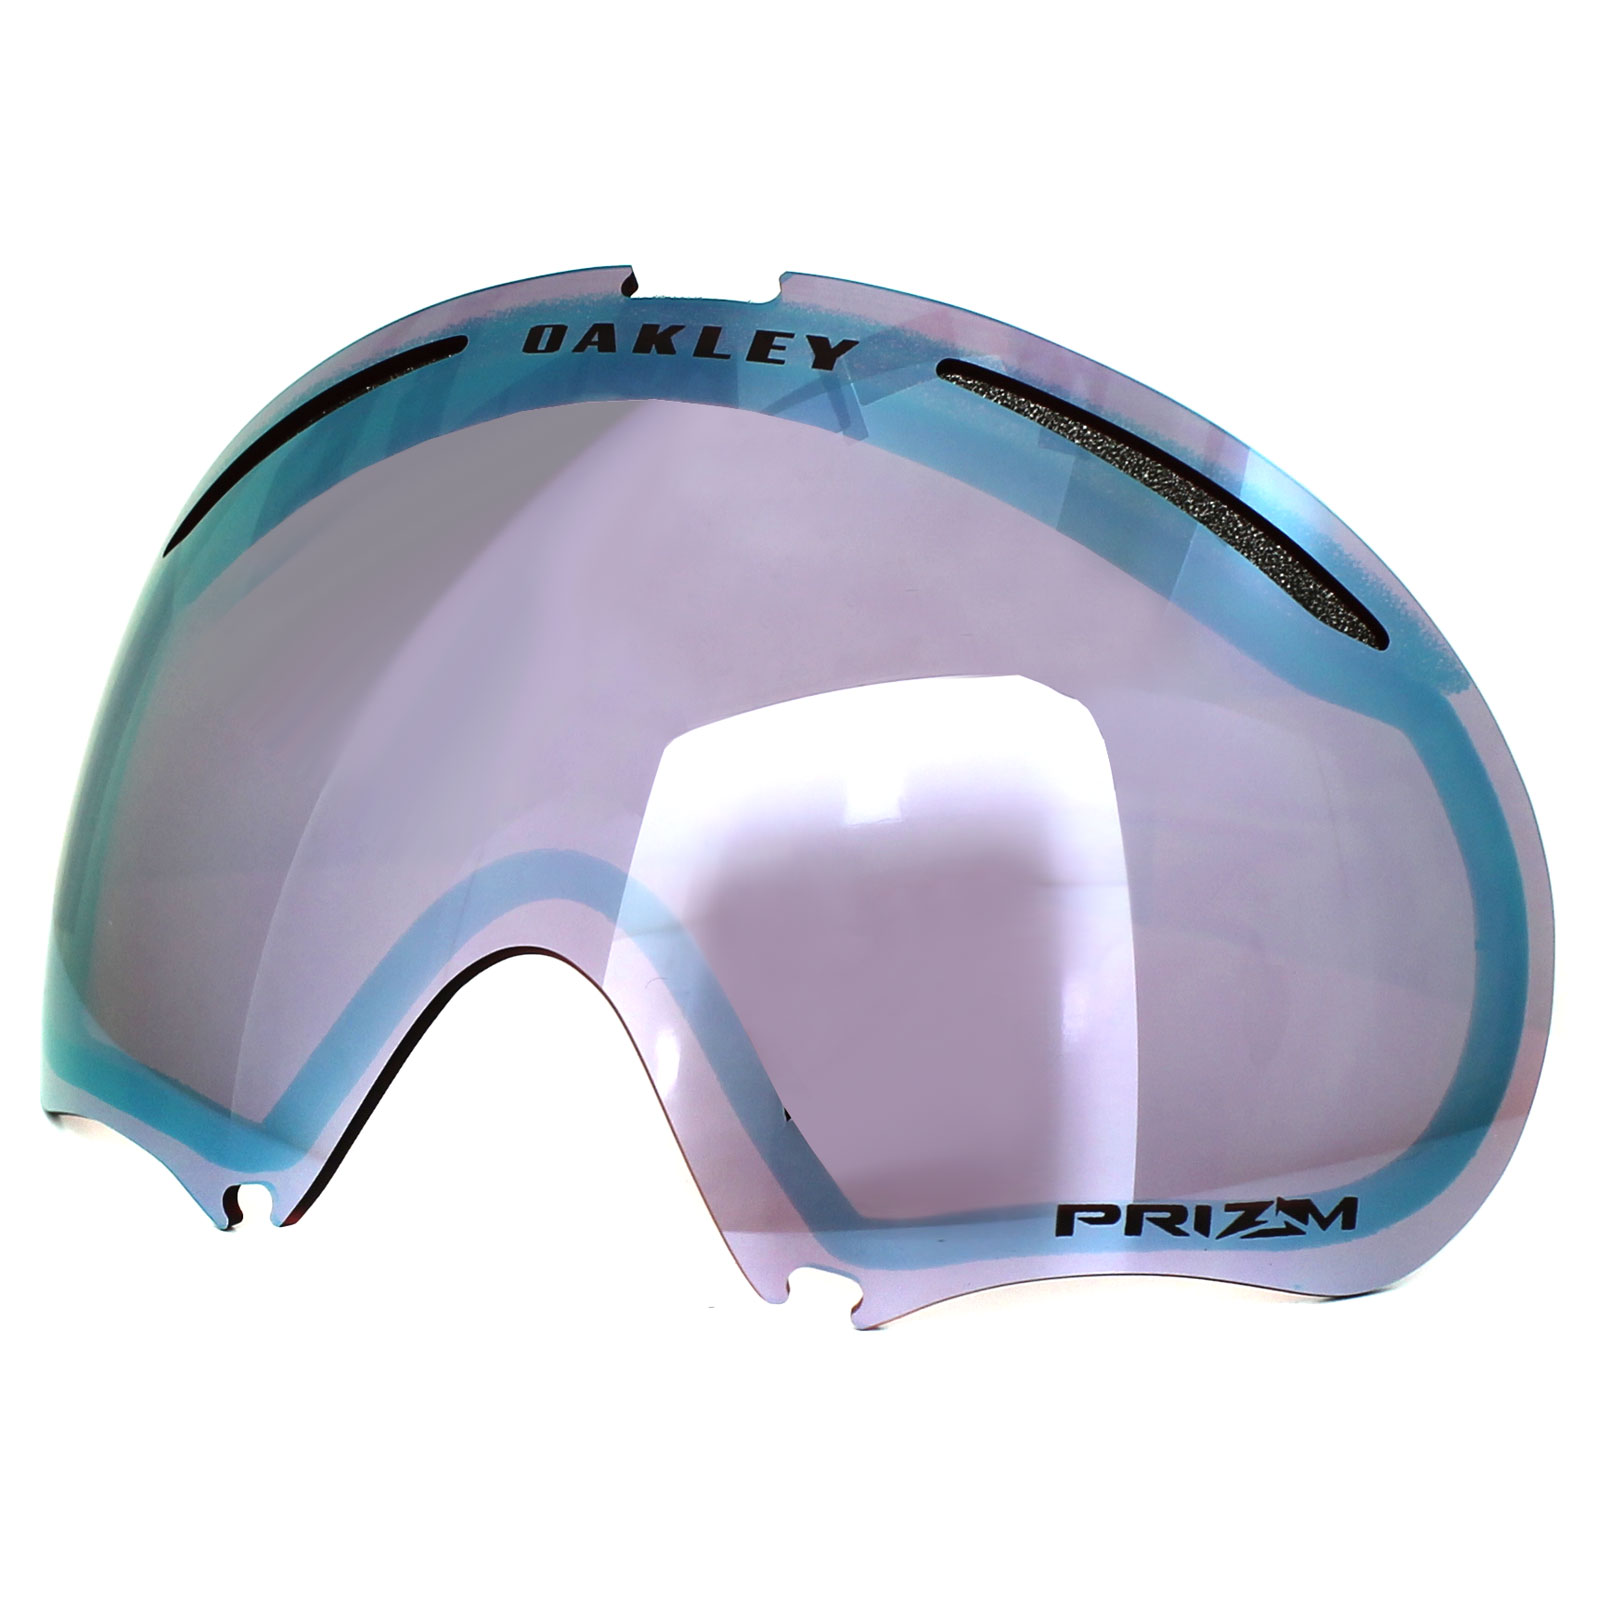 25adc5c1d022 Sentinel Oakley Ski Goggles Replacement Lens A Frame 2.0 Prizm Sapphire  Iridium